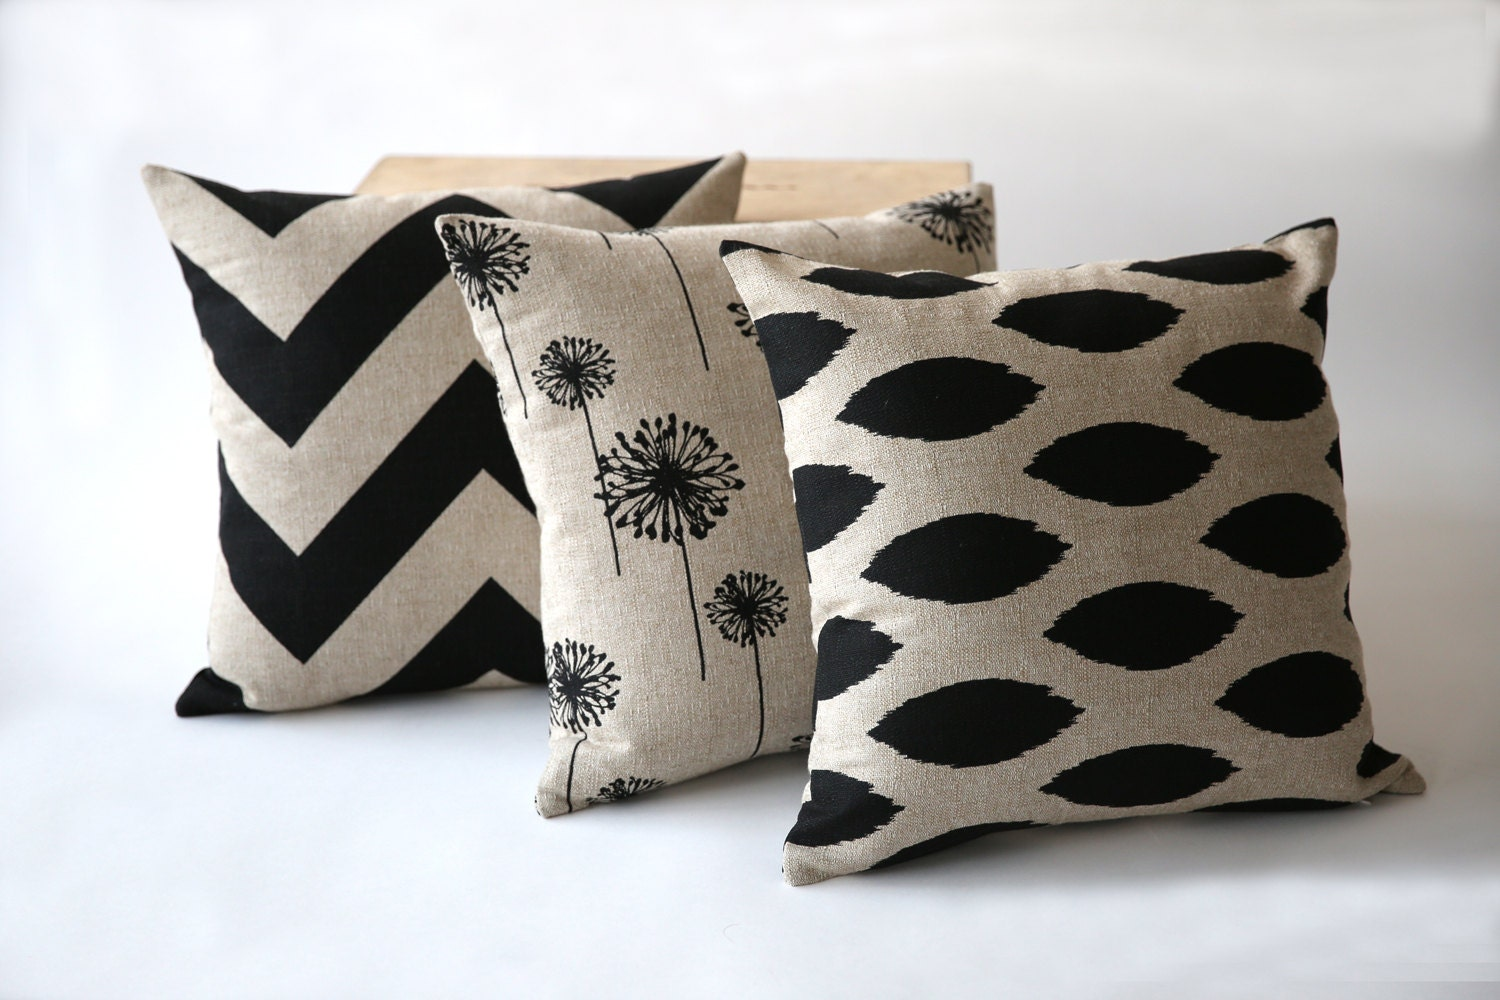 Decorative Pillow Covers With Zippers : One Decorative Throw Zipper Pillow Cover in Black on by Pillomatic